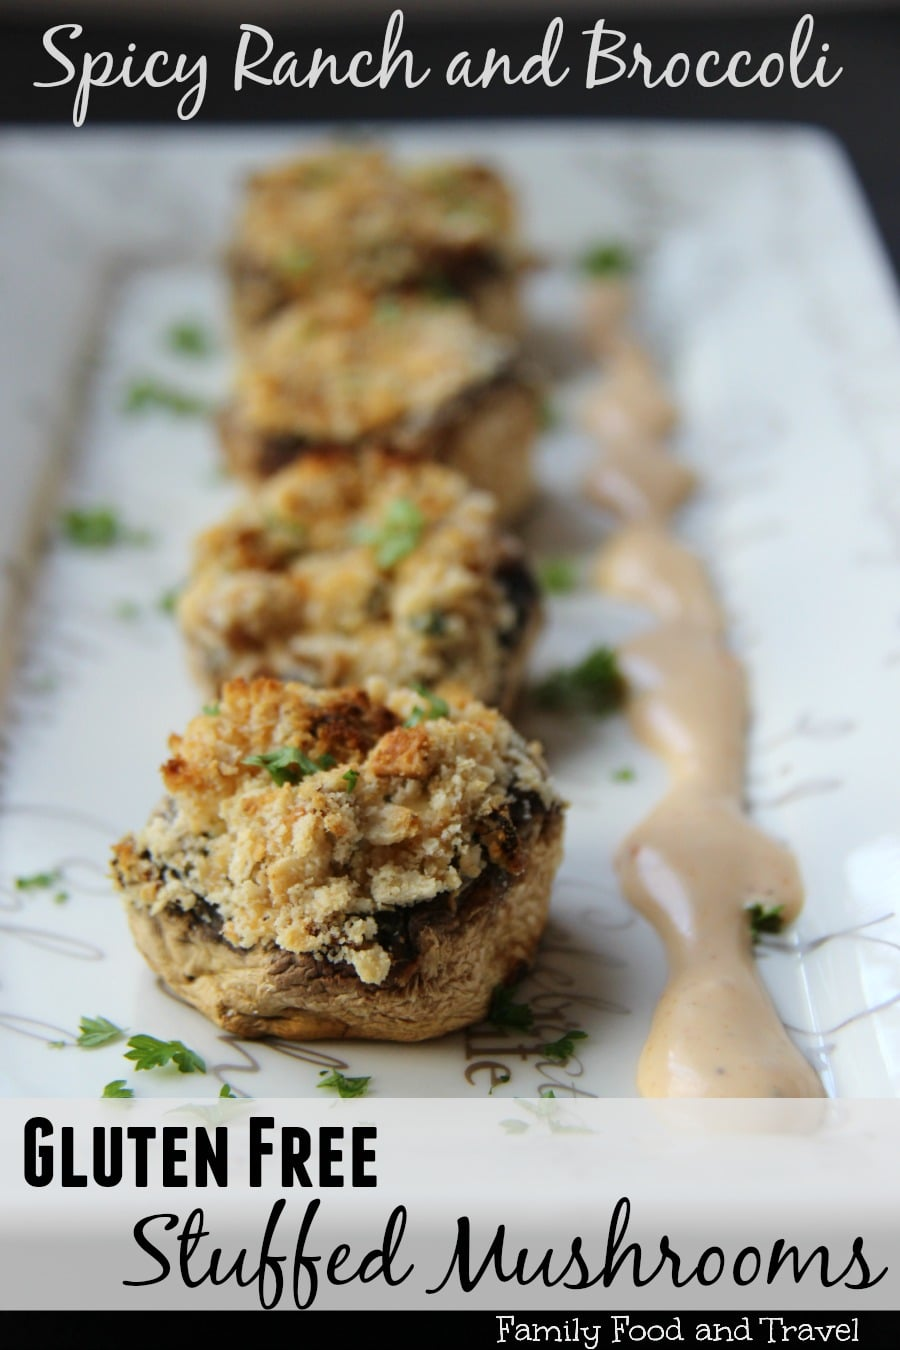 Spicy Ranch and Broccoli Gluten Free Stuffed Mushrooms